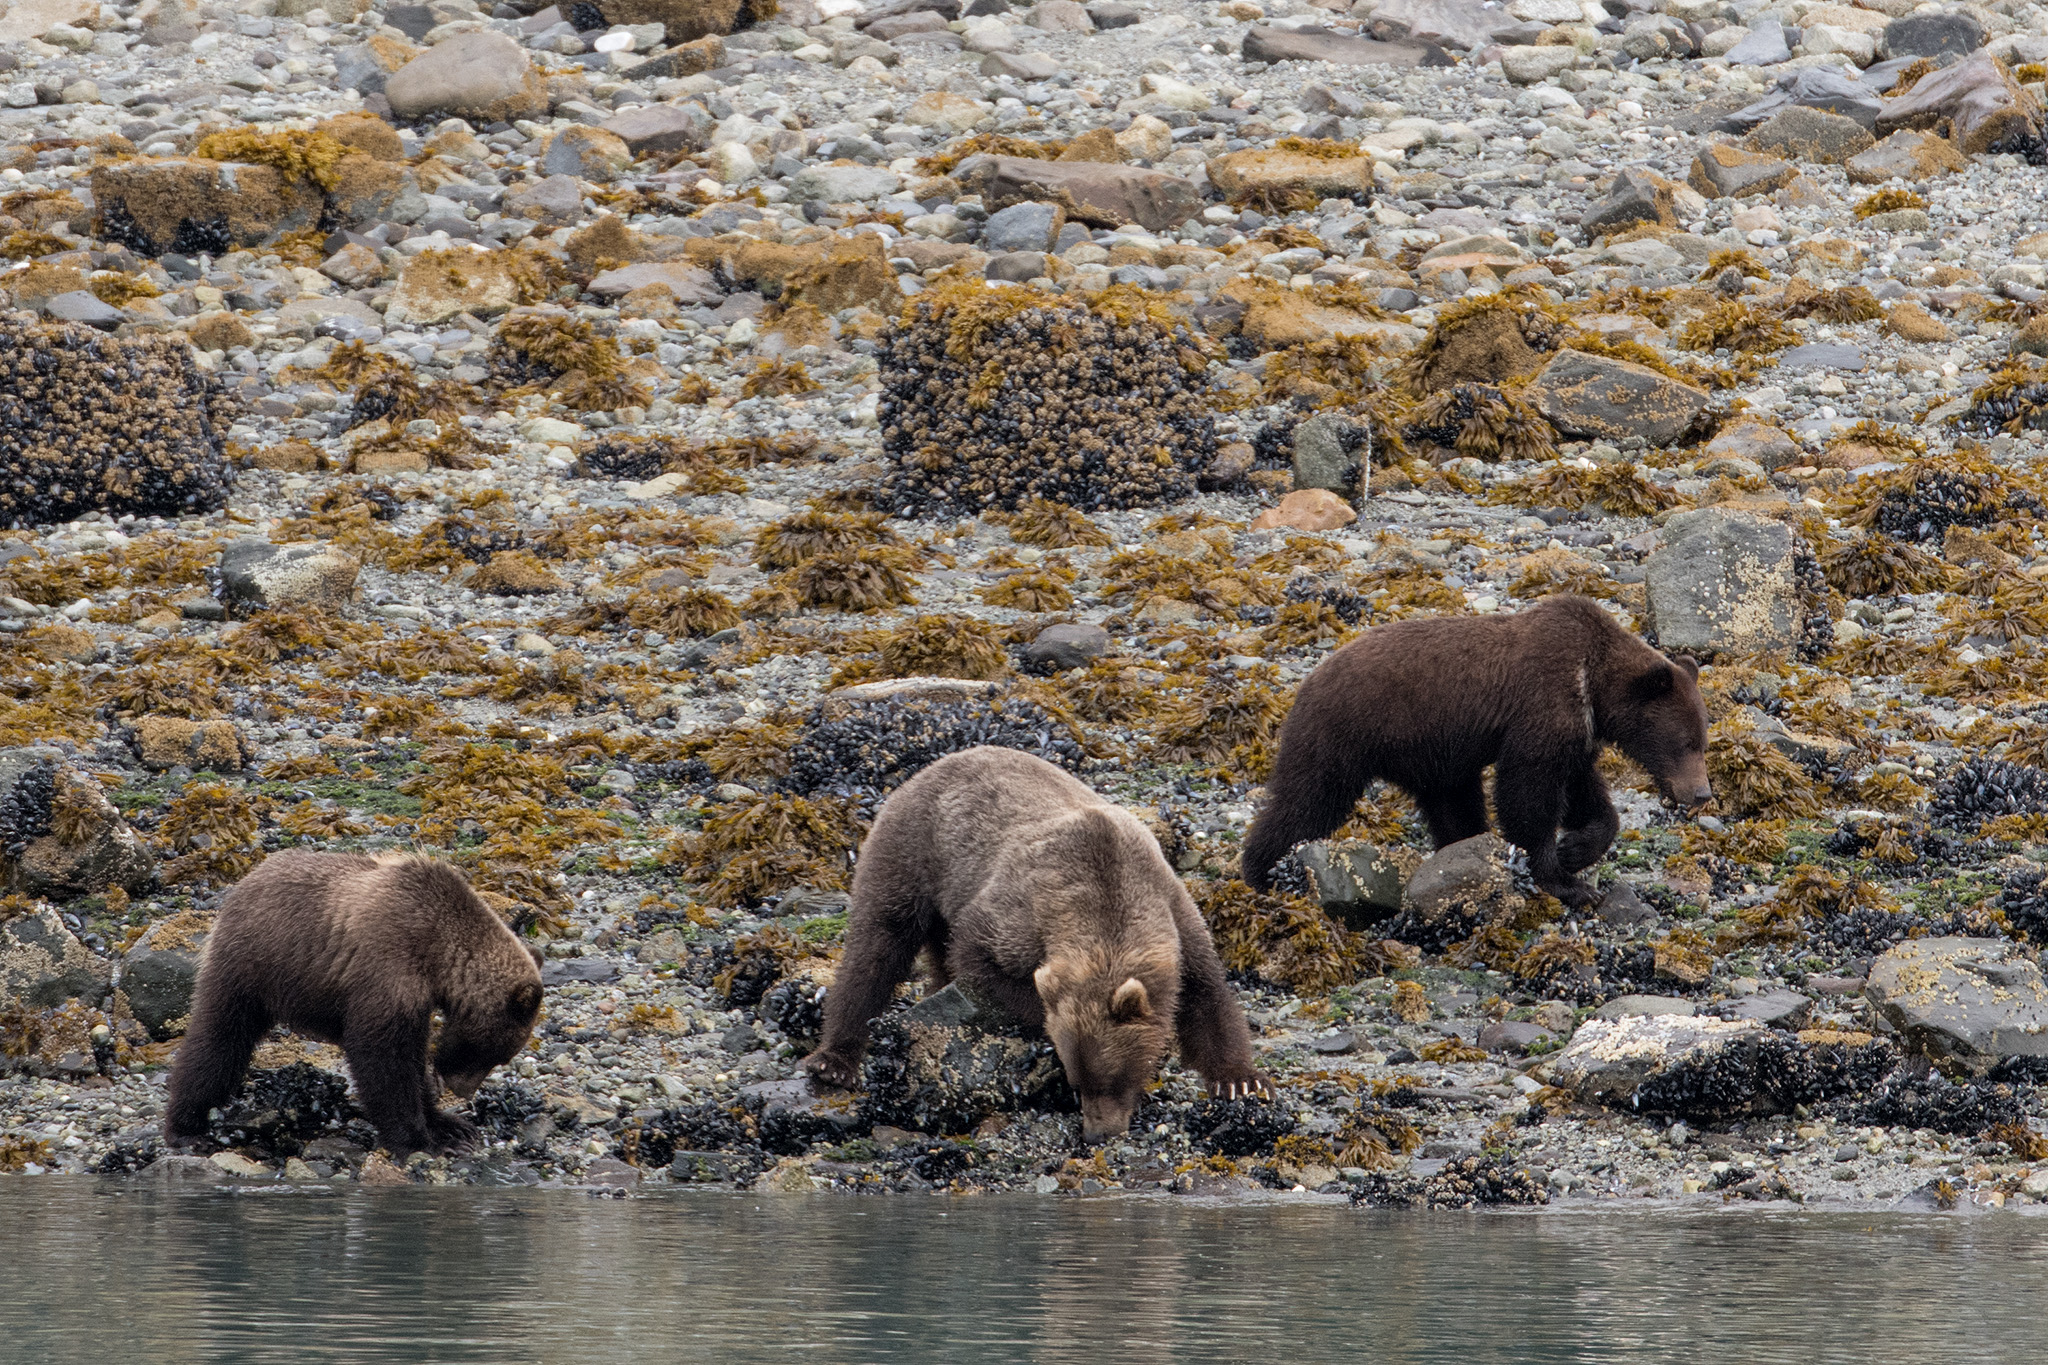 A brown bear mother and cubs looking for food under the rocks along the shore.